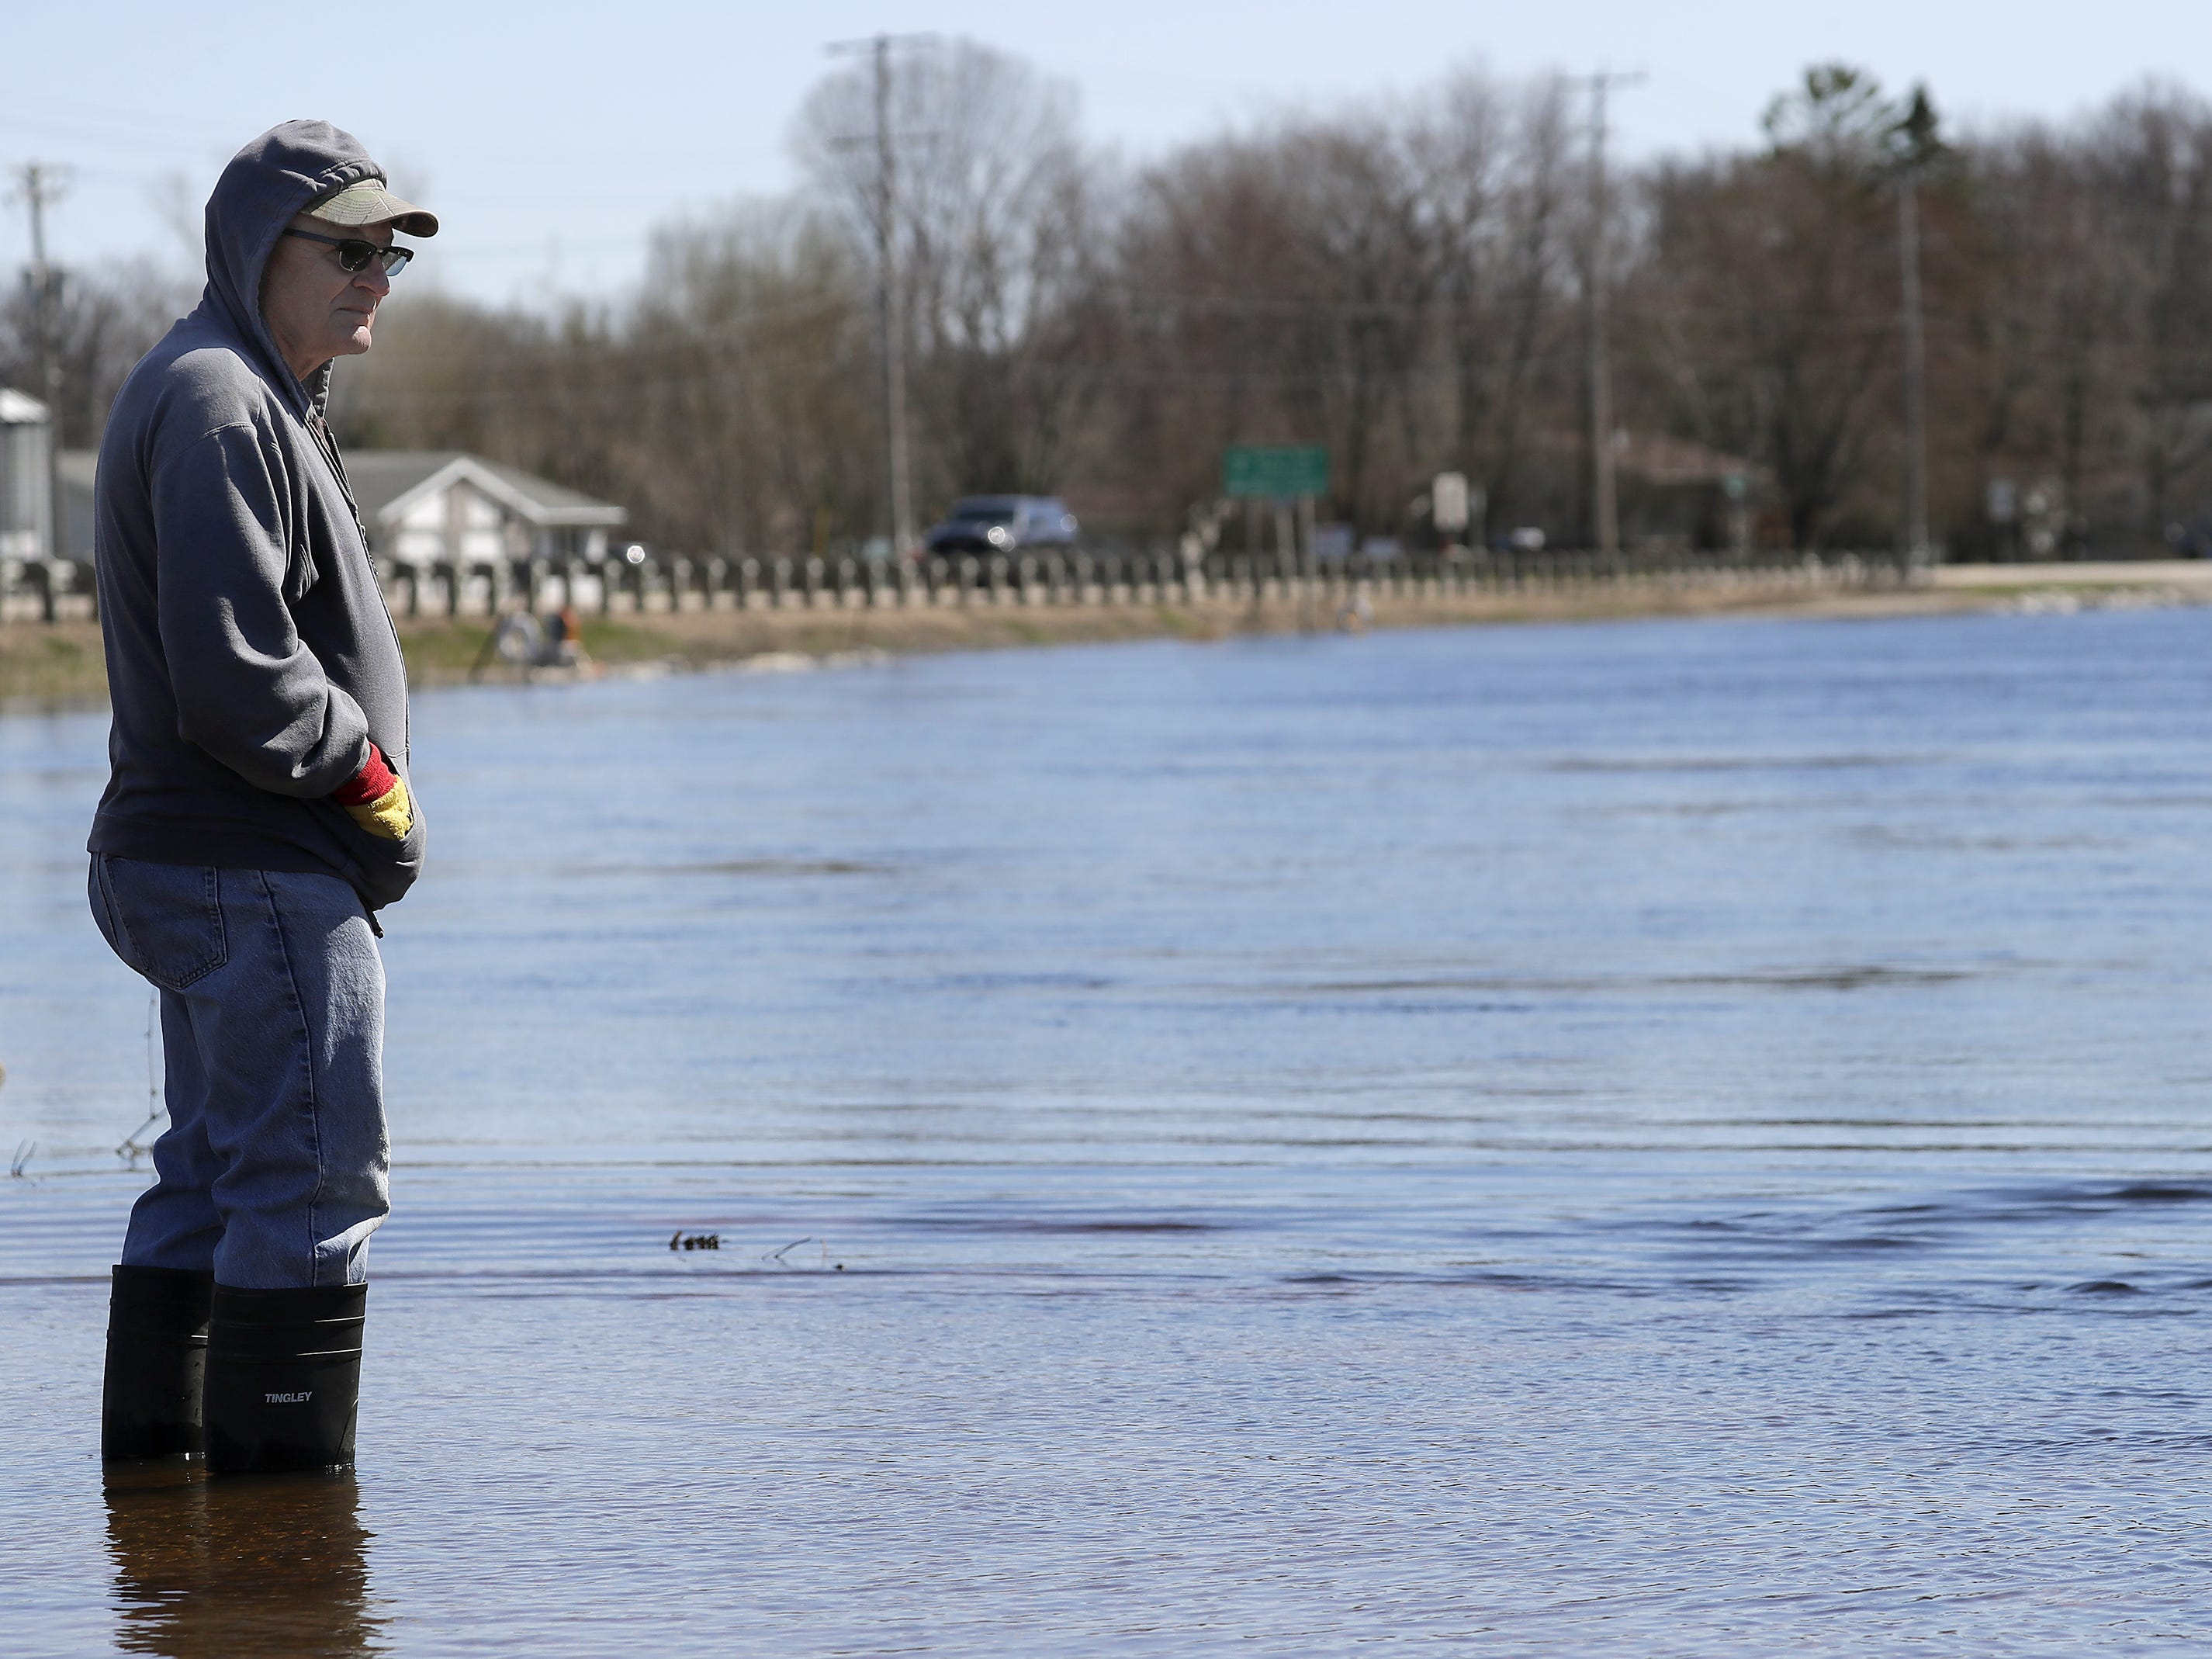 Dan Guyette, Mackville, watches the spring sturgeon spawn from a flooded trail at Bamboo Bebd during flooding along the Wolf River on Tuesday, April 23, 2019, in Shiocton, Wis.  Wm. Glasheen/USA TODAY NETWORK-Wisconsin.